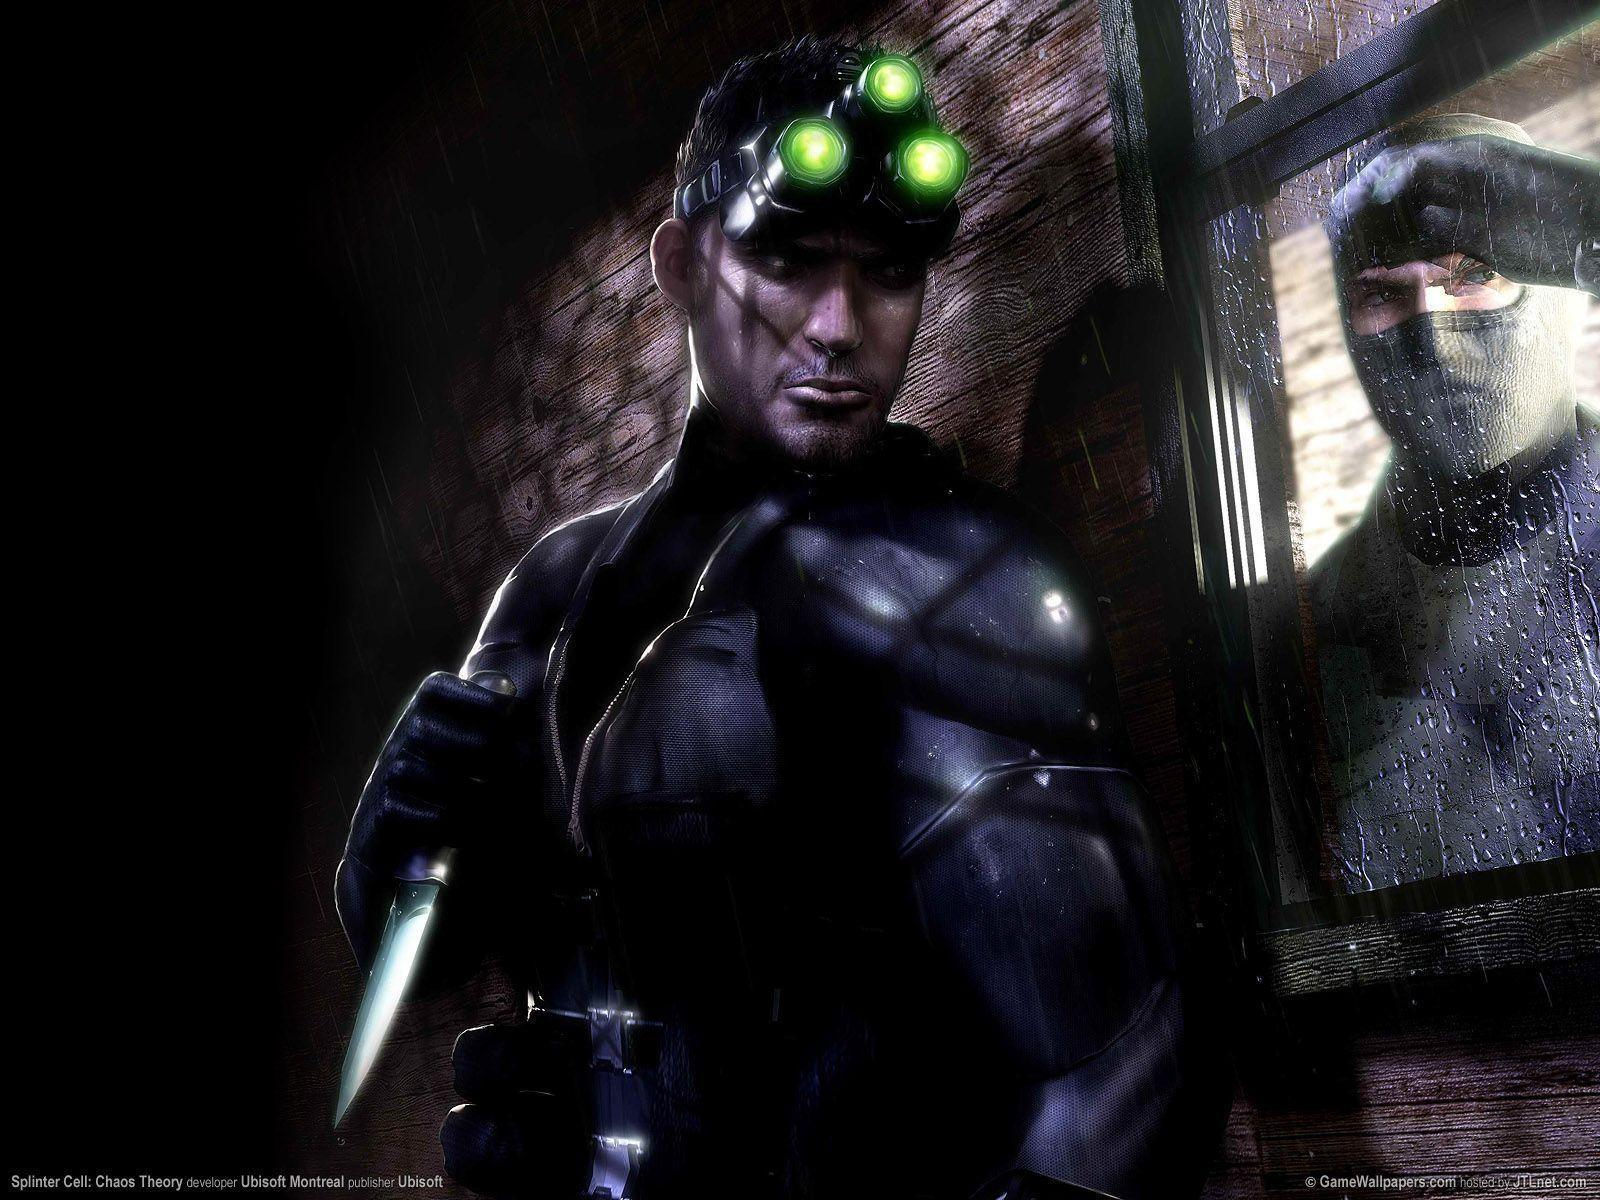 Splinter cell chaos theory wallpapers wallpaper cave - Chaos wallpaper ...